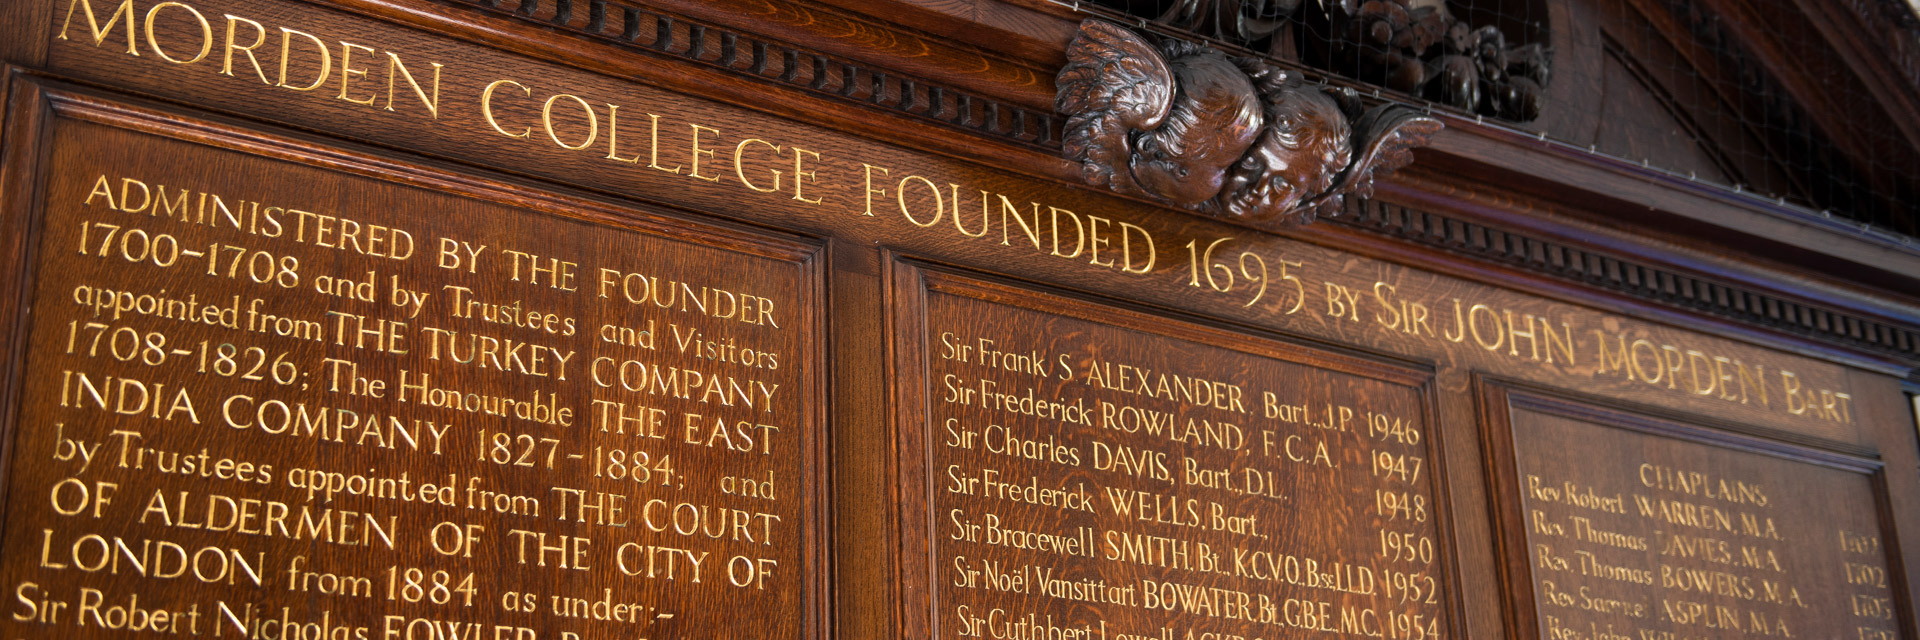 Morden-College-header-imagery-history2